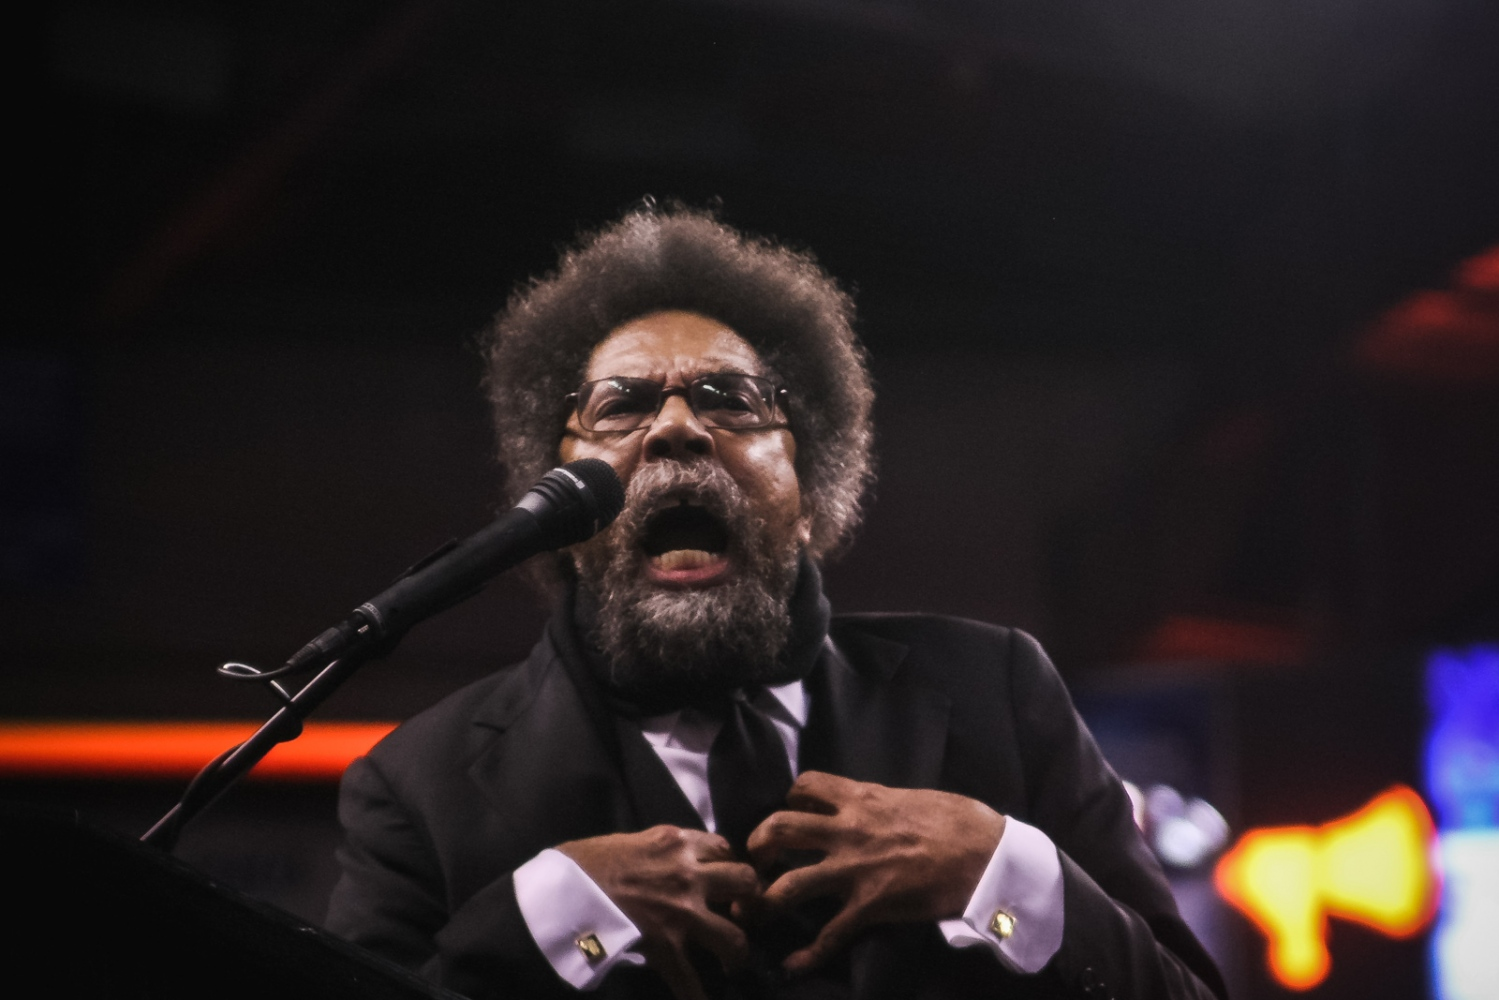 Liberatin theologist and socialist Cornel West speaks to hundreds of supporters in St. Louis.